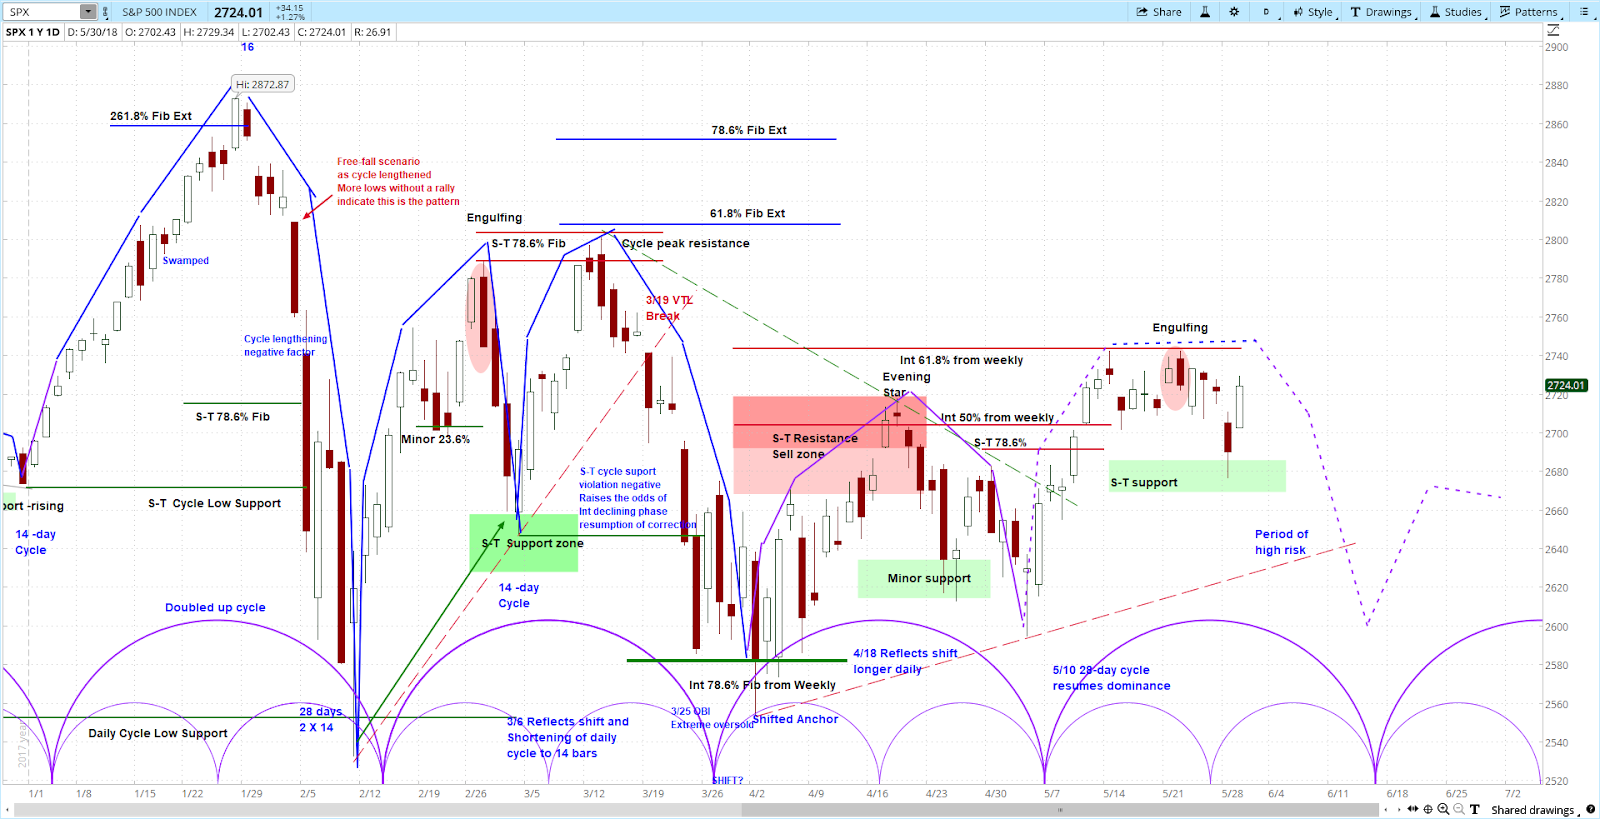 S&P 500 (SPX) Daily Chart from our Stock Index Report